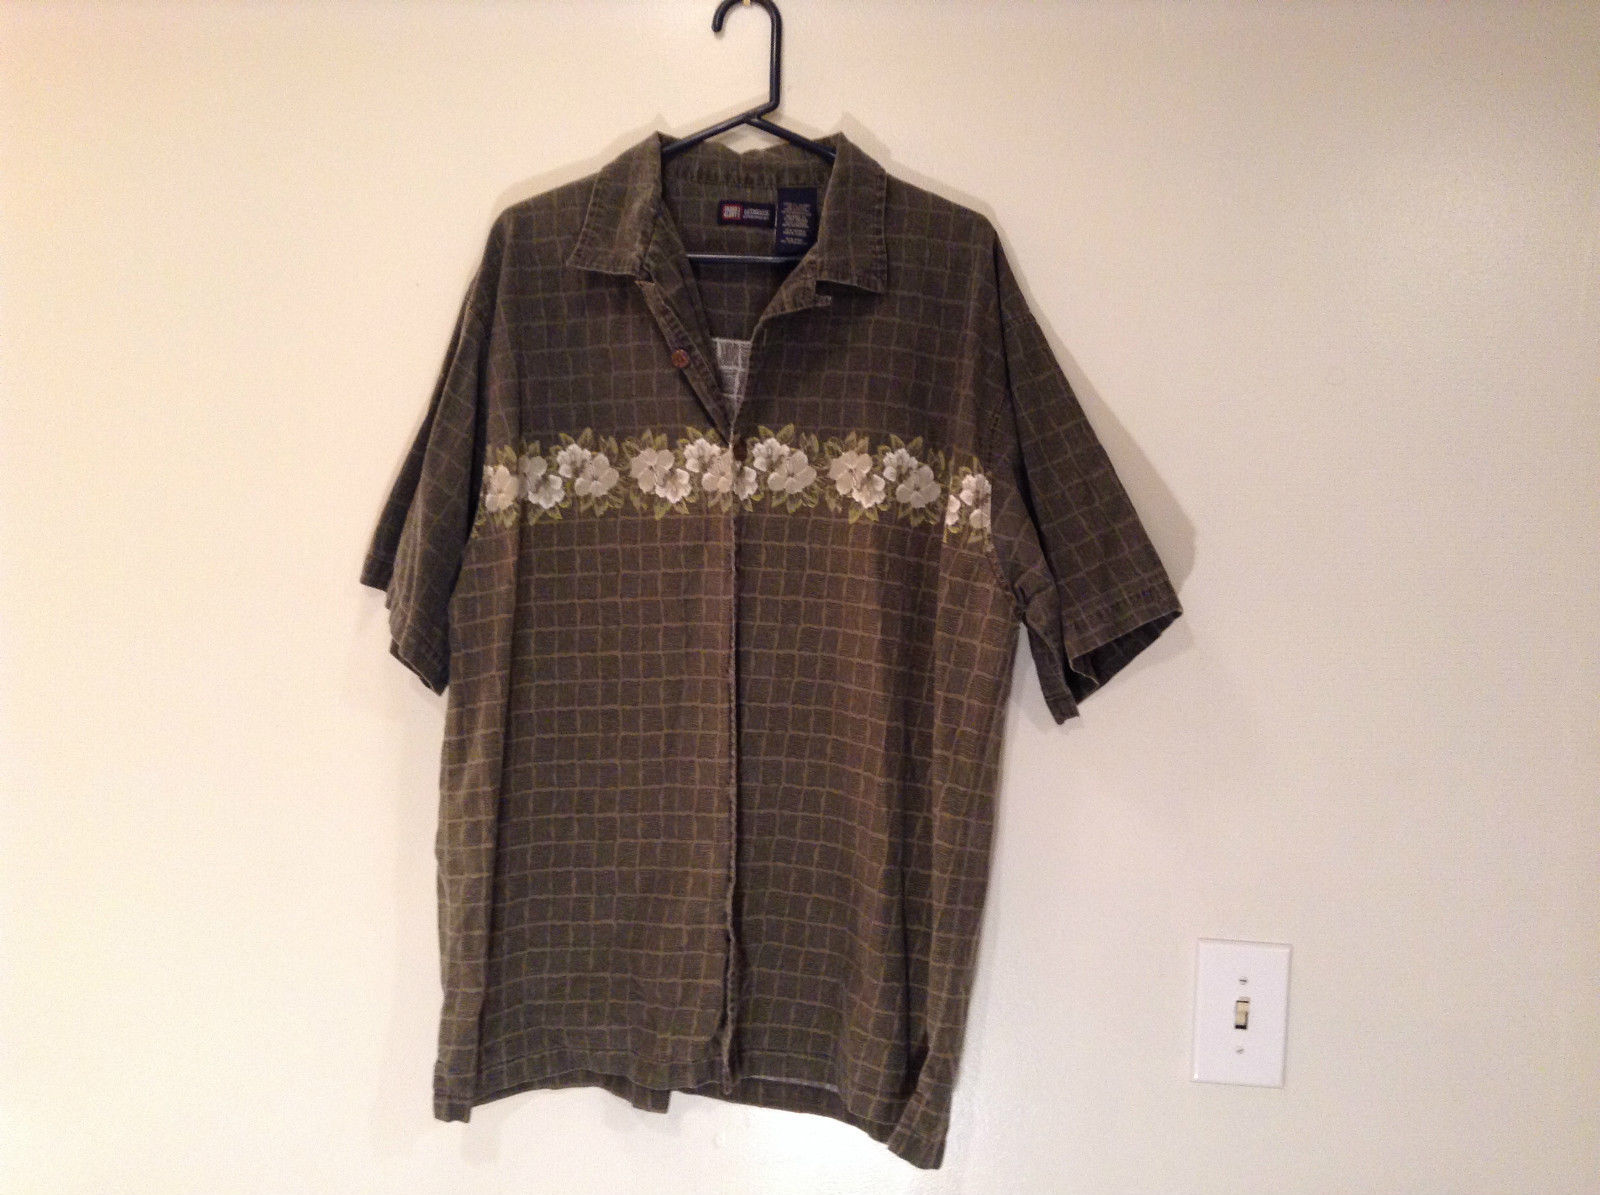 Short Sleeve Dark Olive Green with Floral Design Faded Glory Shirt Size XL